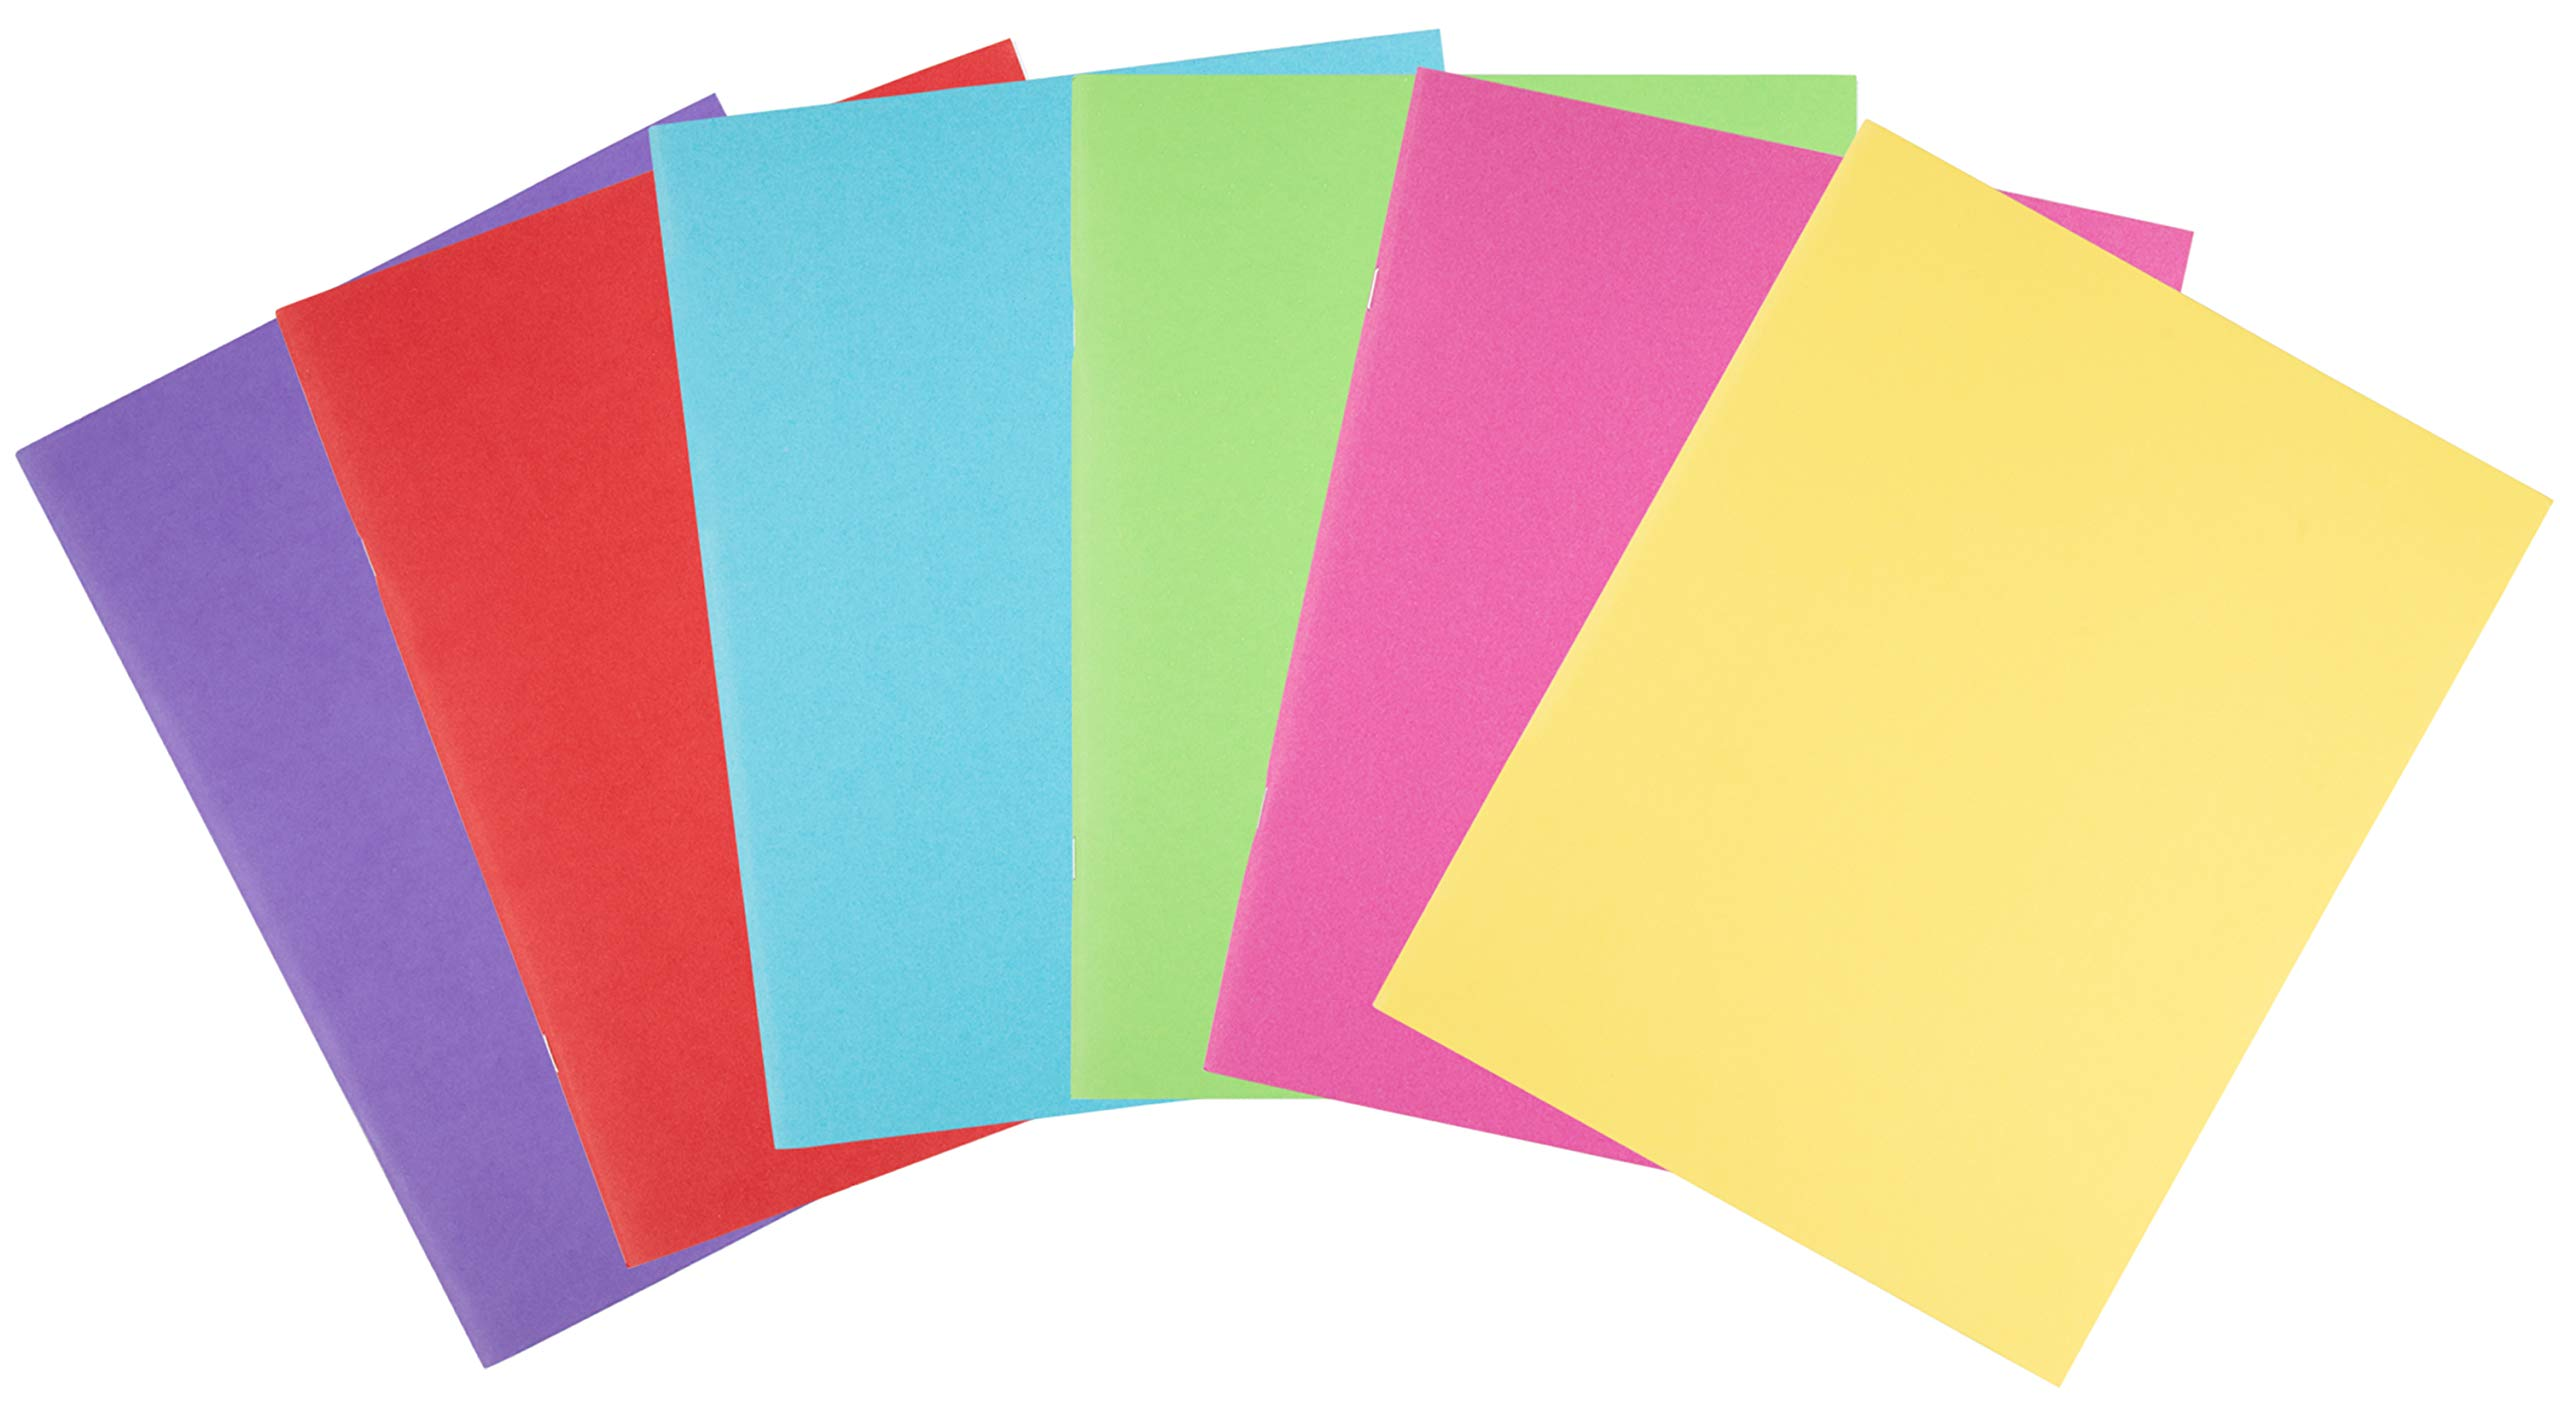 Blank Book - 24-Pack Colorful Notebooks, Unlined Plain Travel Journals for Students, Kids Diaries, Creative Writing Projects, 6 Assorted Colors, 8.5 x 11 Inches, Letter Size, 24 Sheets